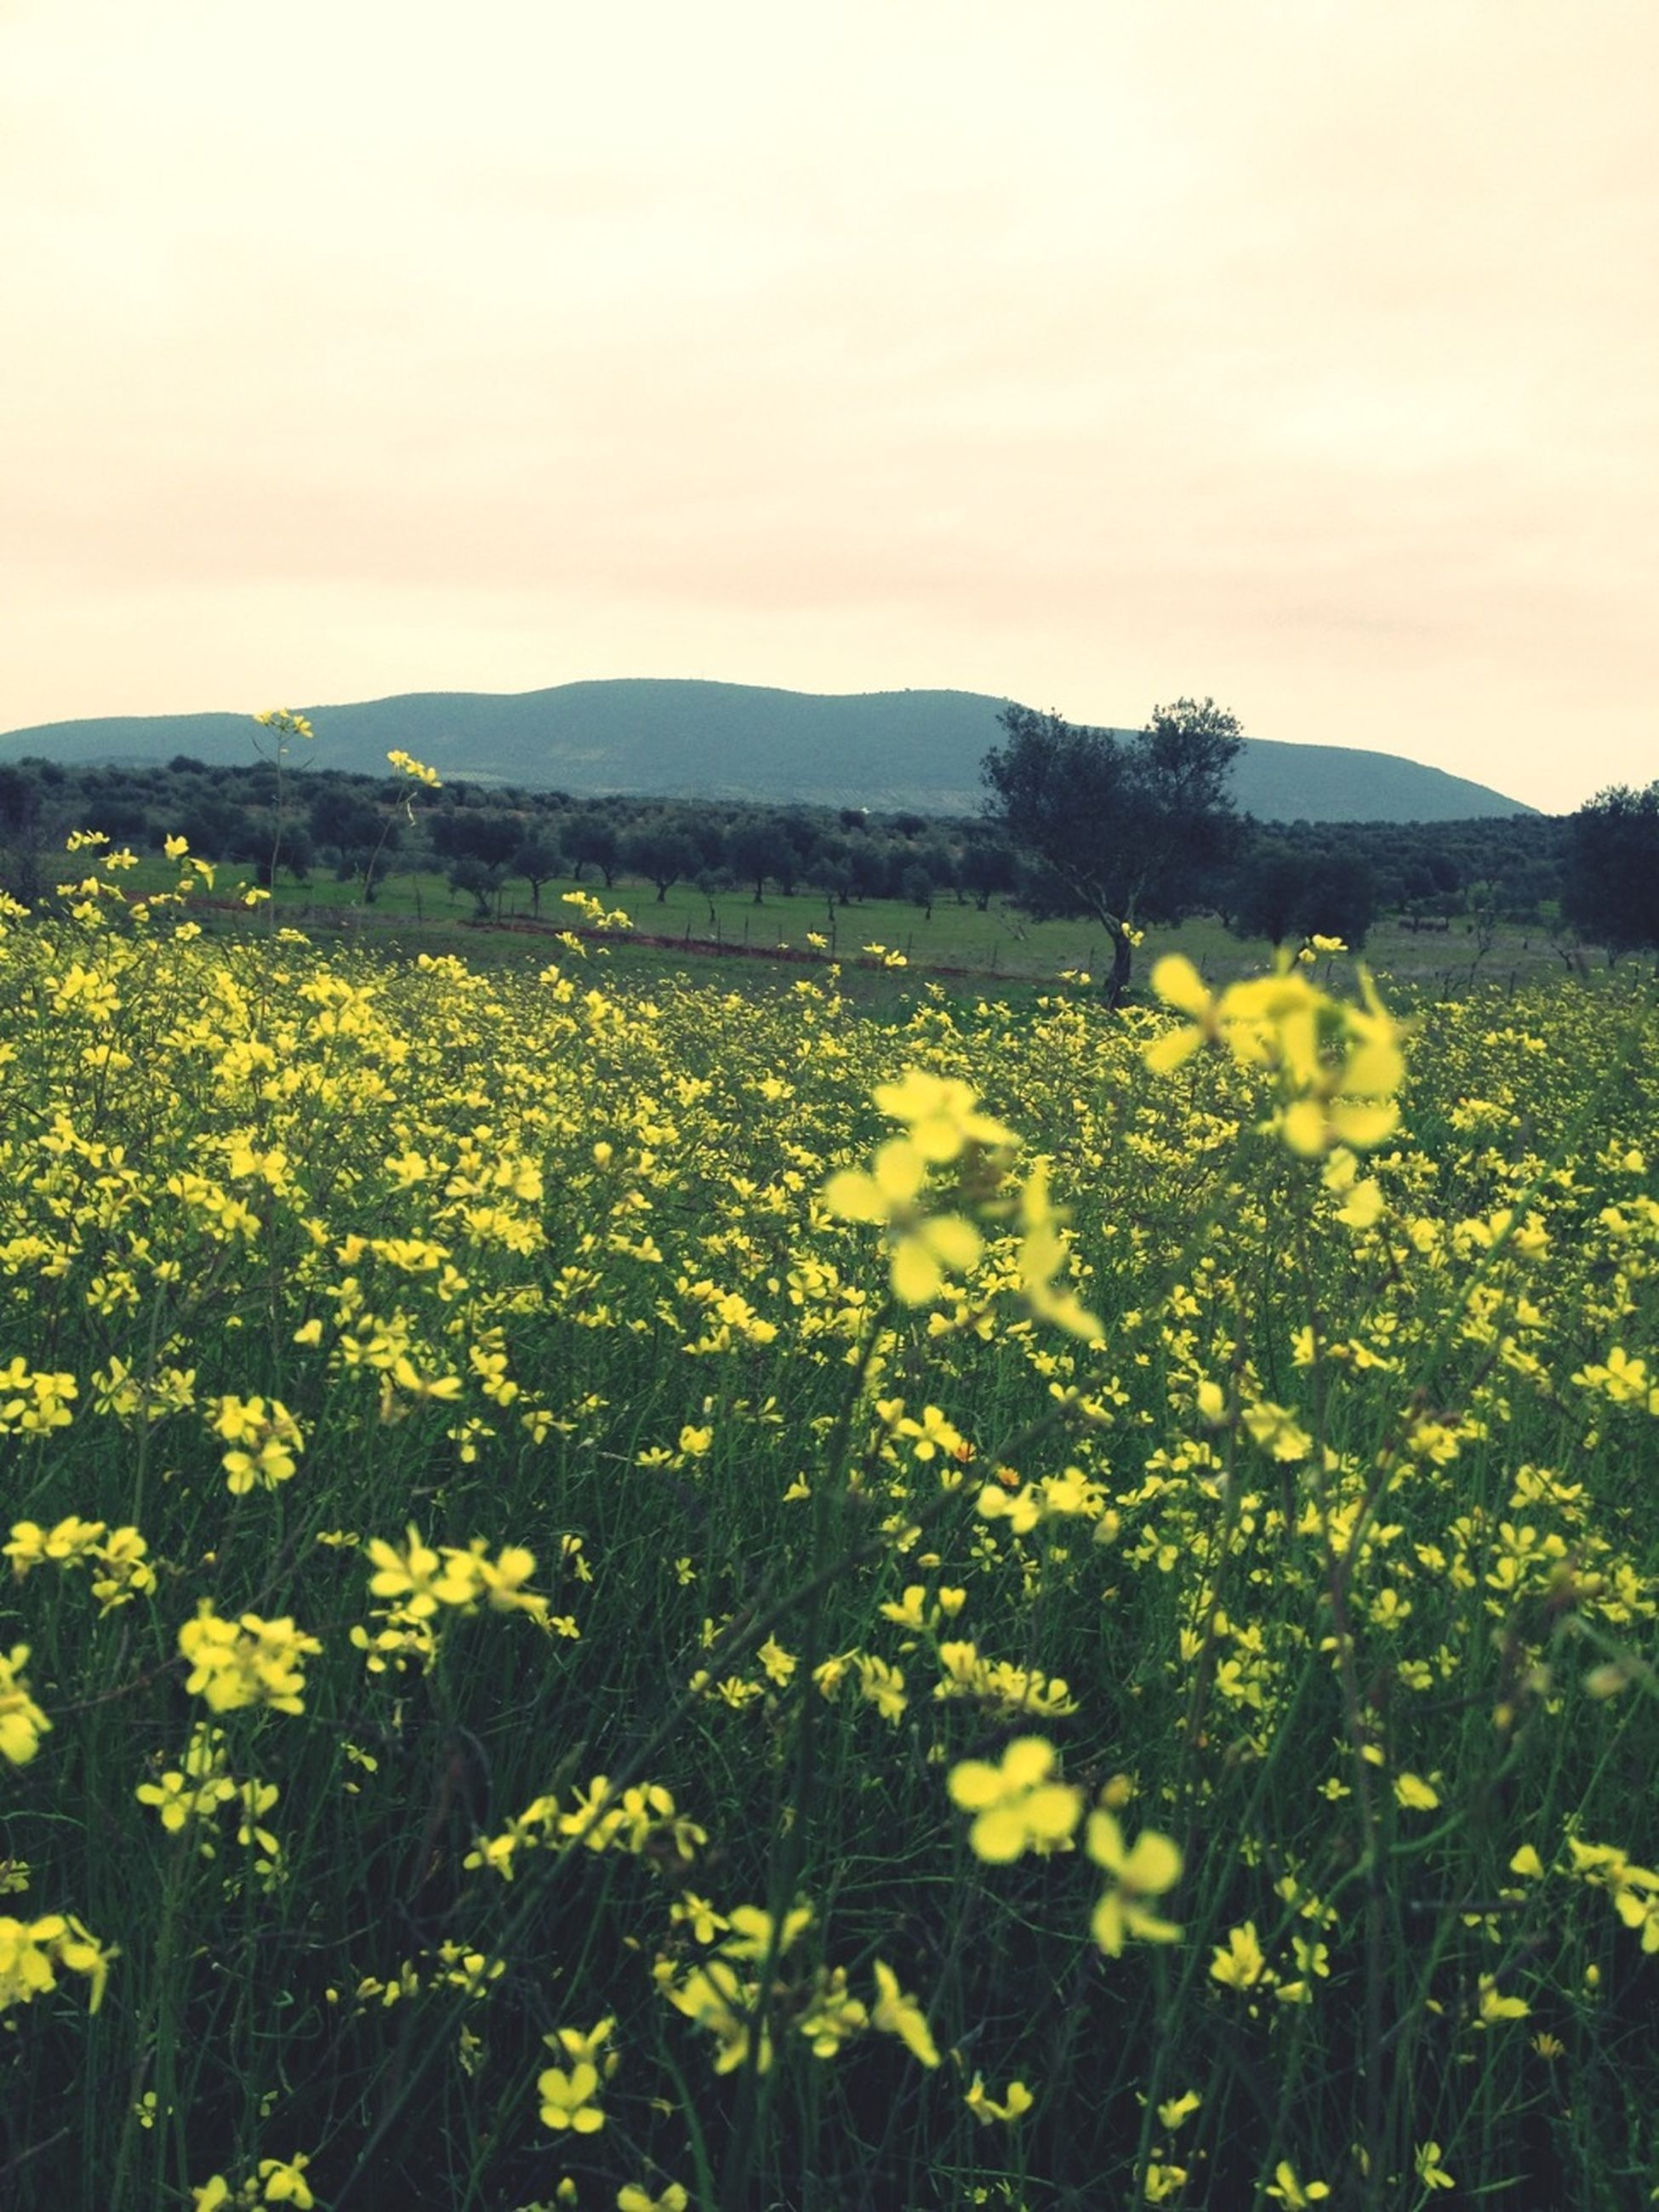 flower, yellow, beauty in nature, freshness, field, growth, landscape, nature, rural scene, tranquil scene, agriculture, fragility, scenics, abundance, sky, tranquility, mountain, blooming, plant, farm